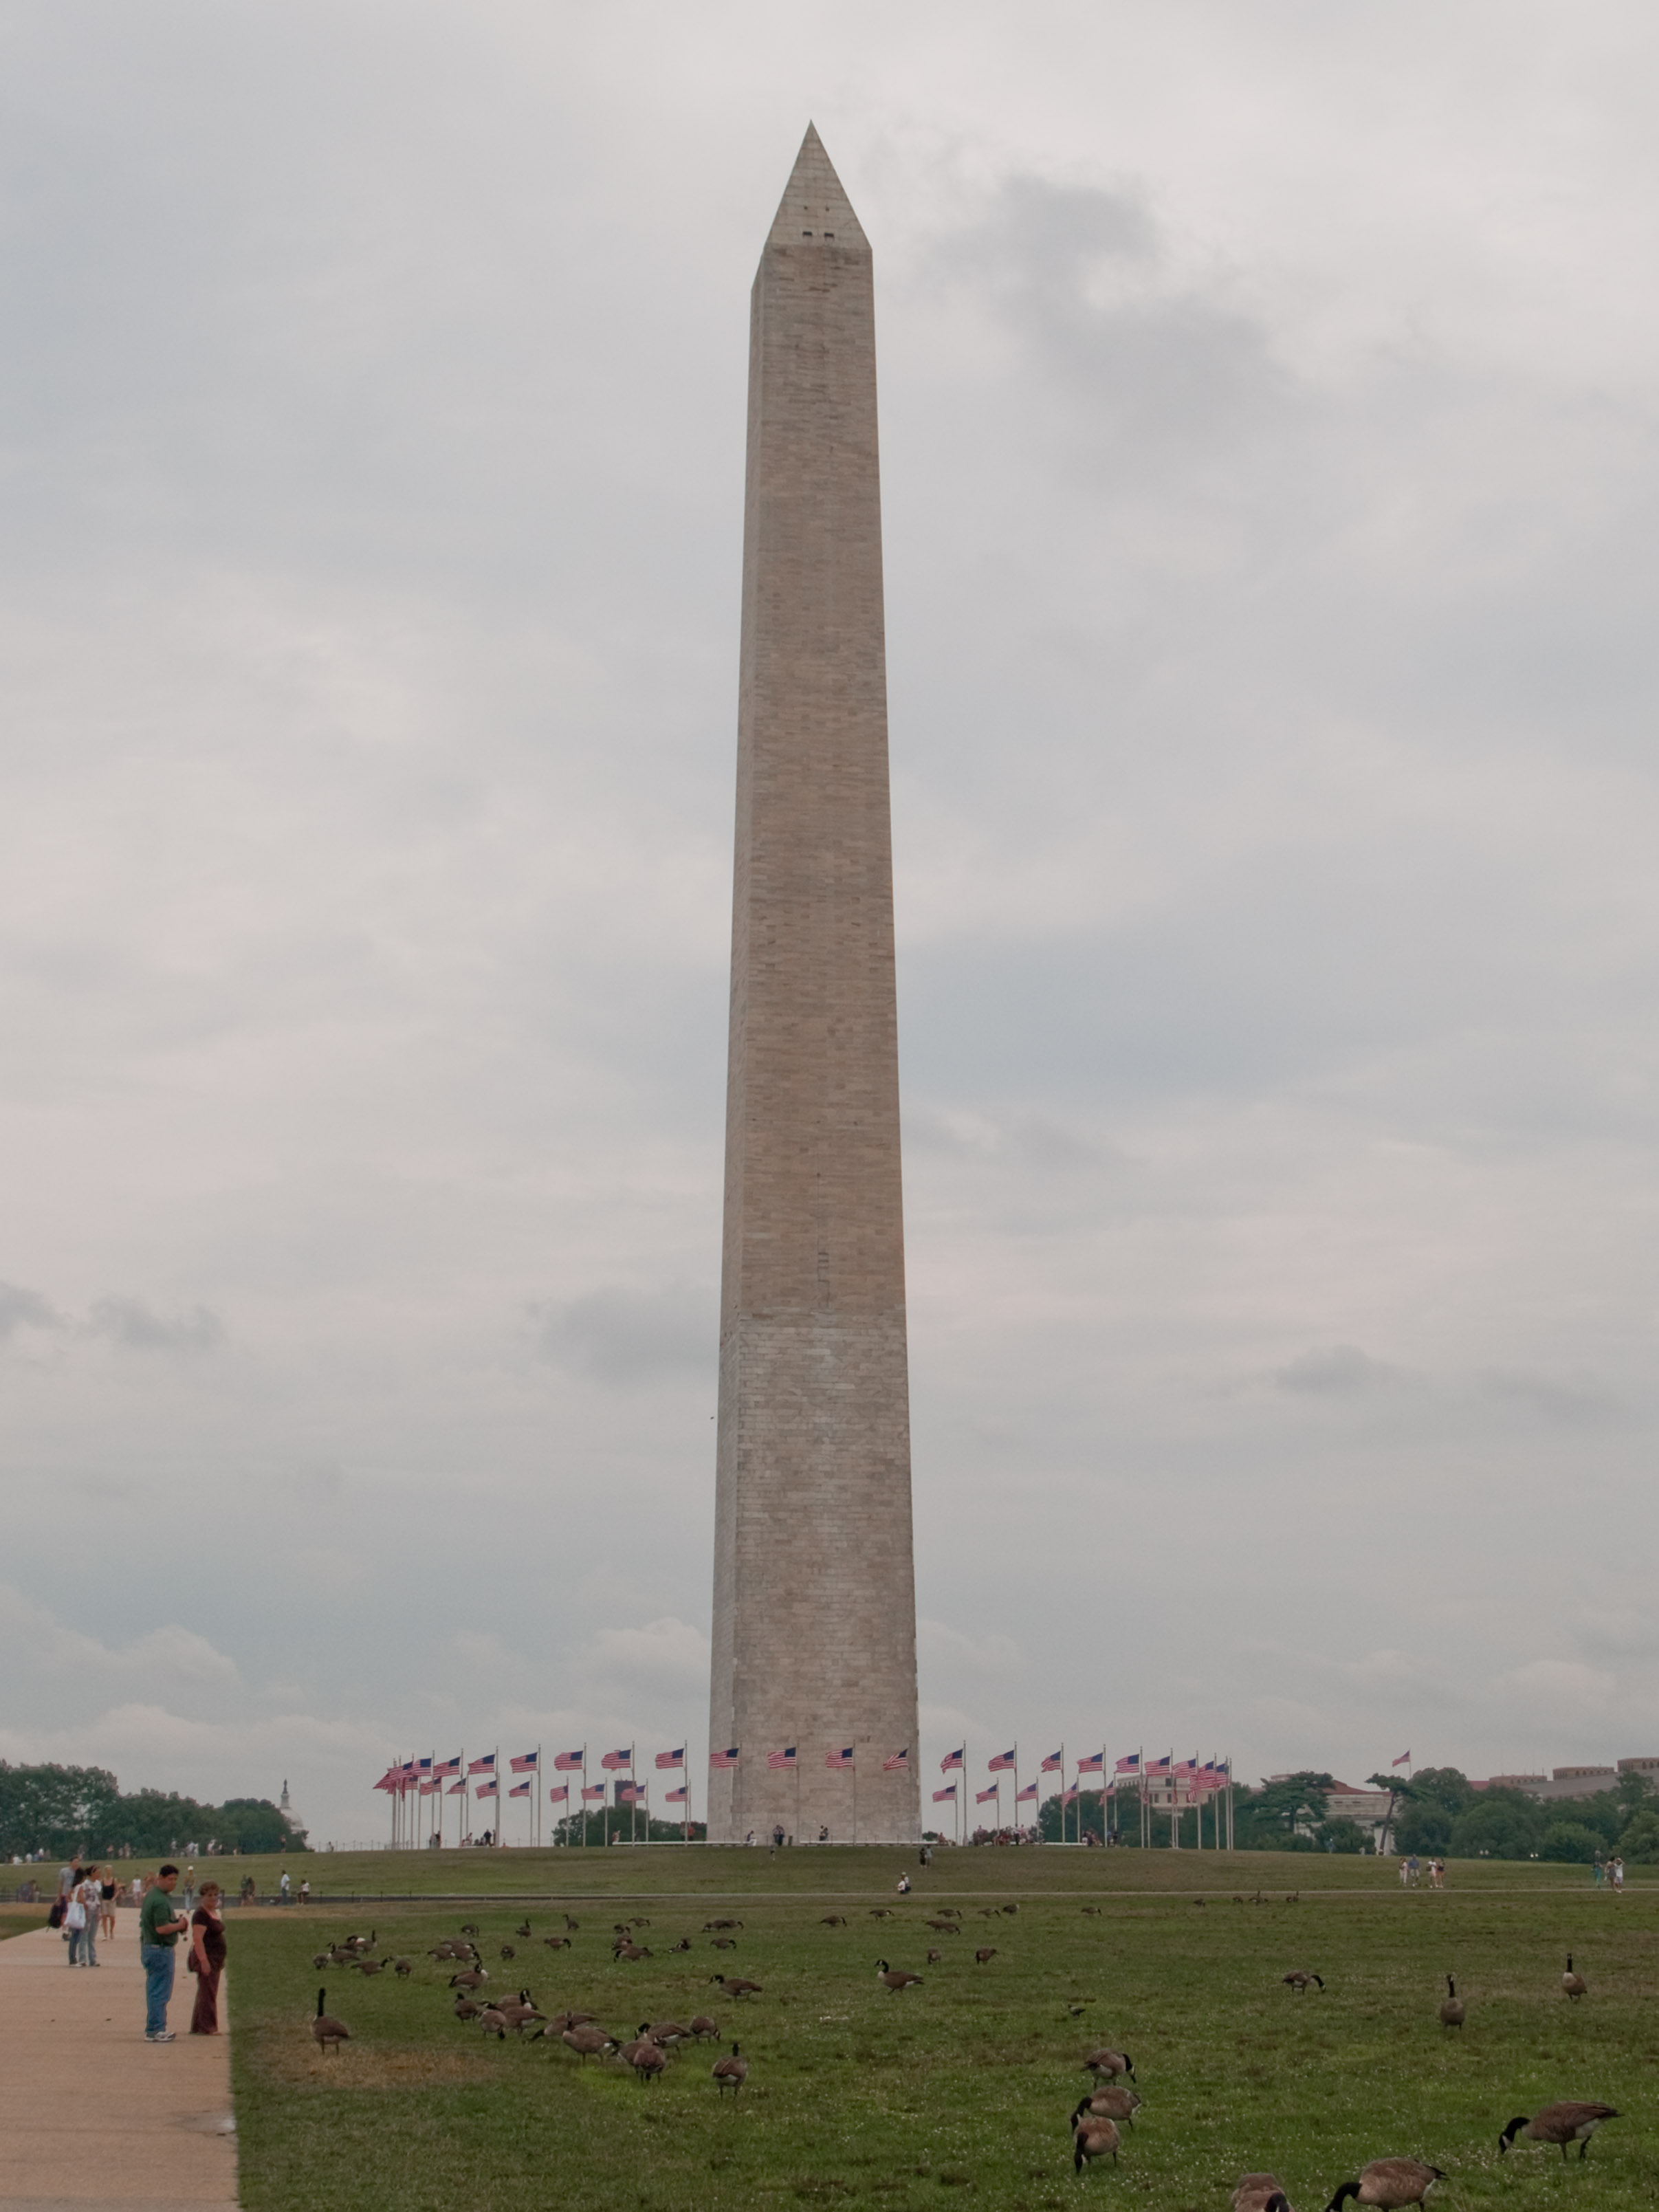 robert mills and the washington monument The washington monument by architect robert mills was built in washington dc, estados unidos in 1848-1854, 1876-1888 it was then remodeled in 1934, 1964, 1998-2001, 2004-2005.